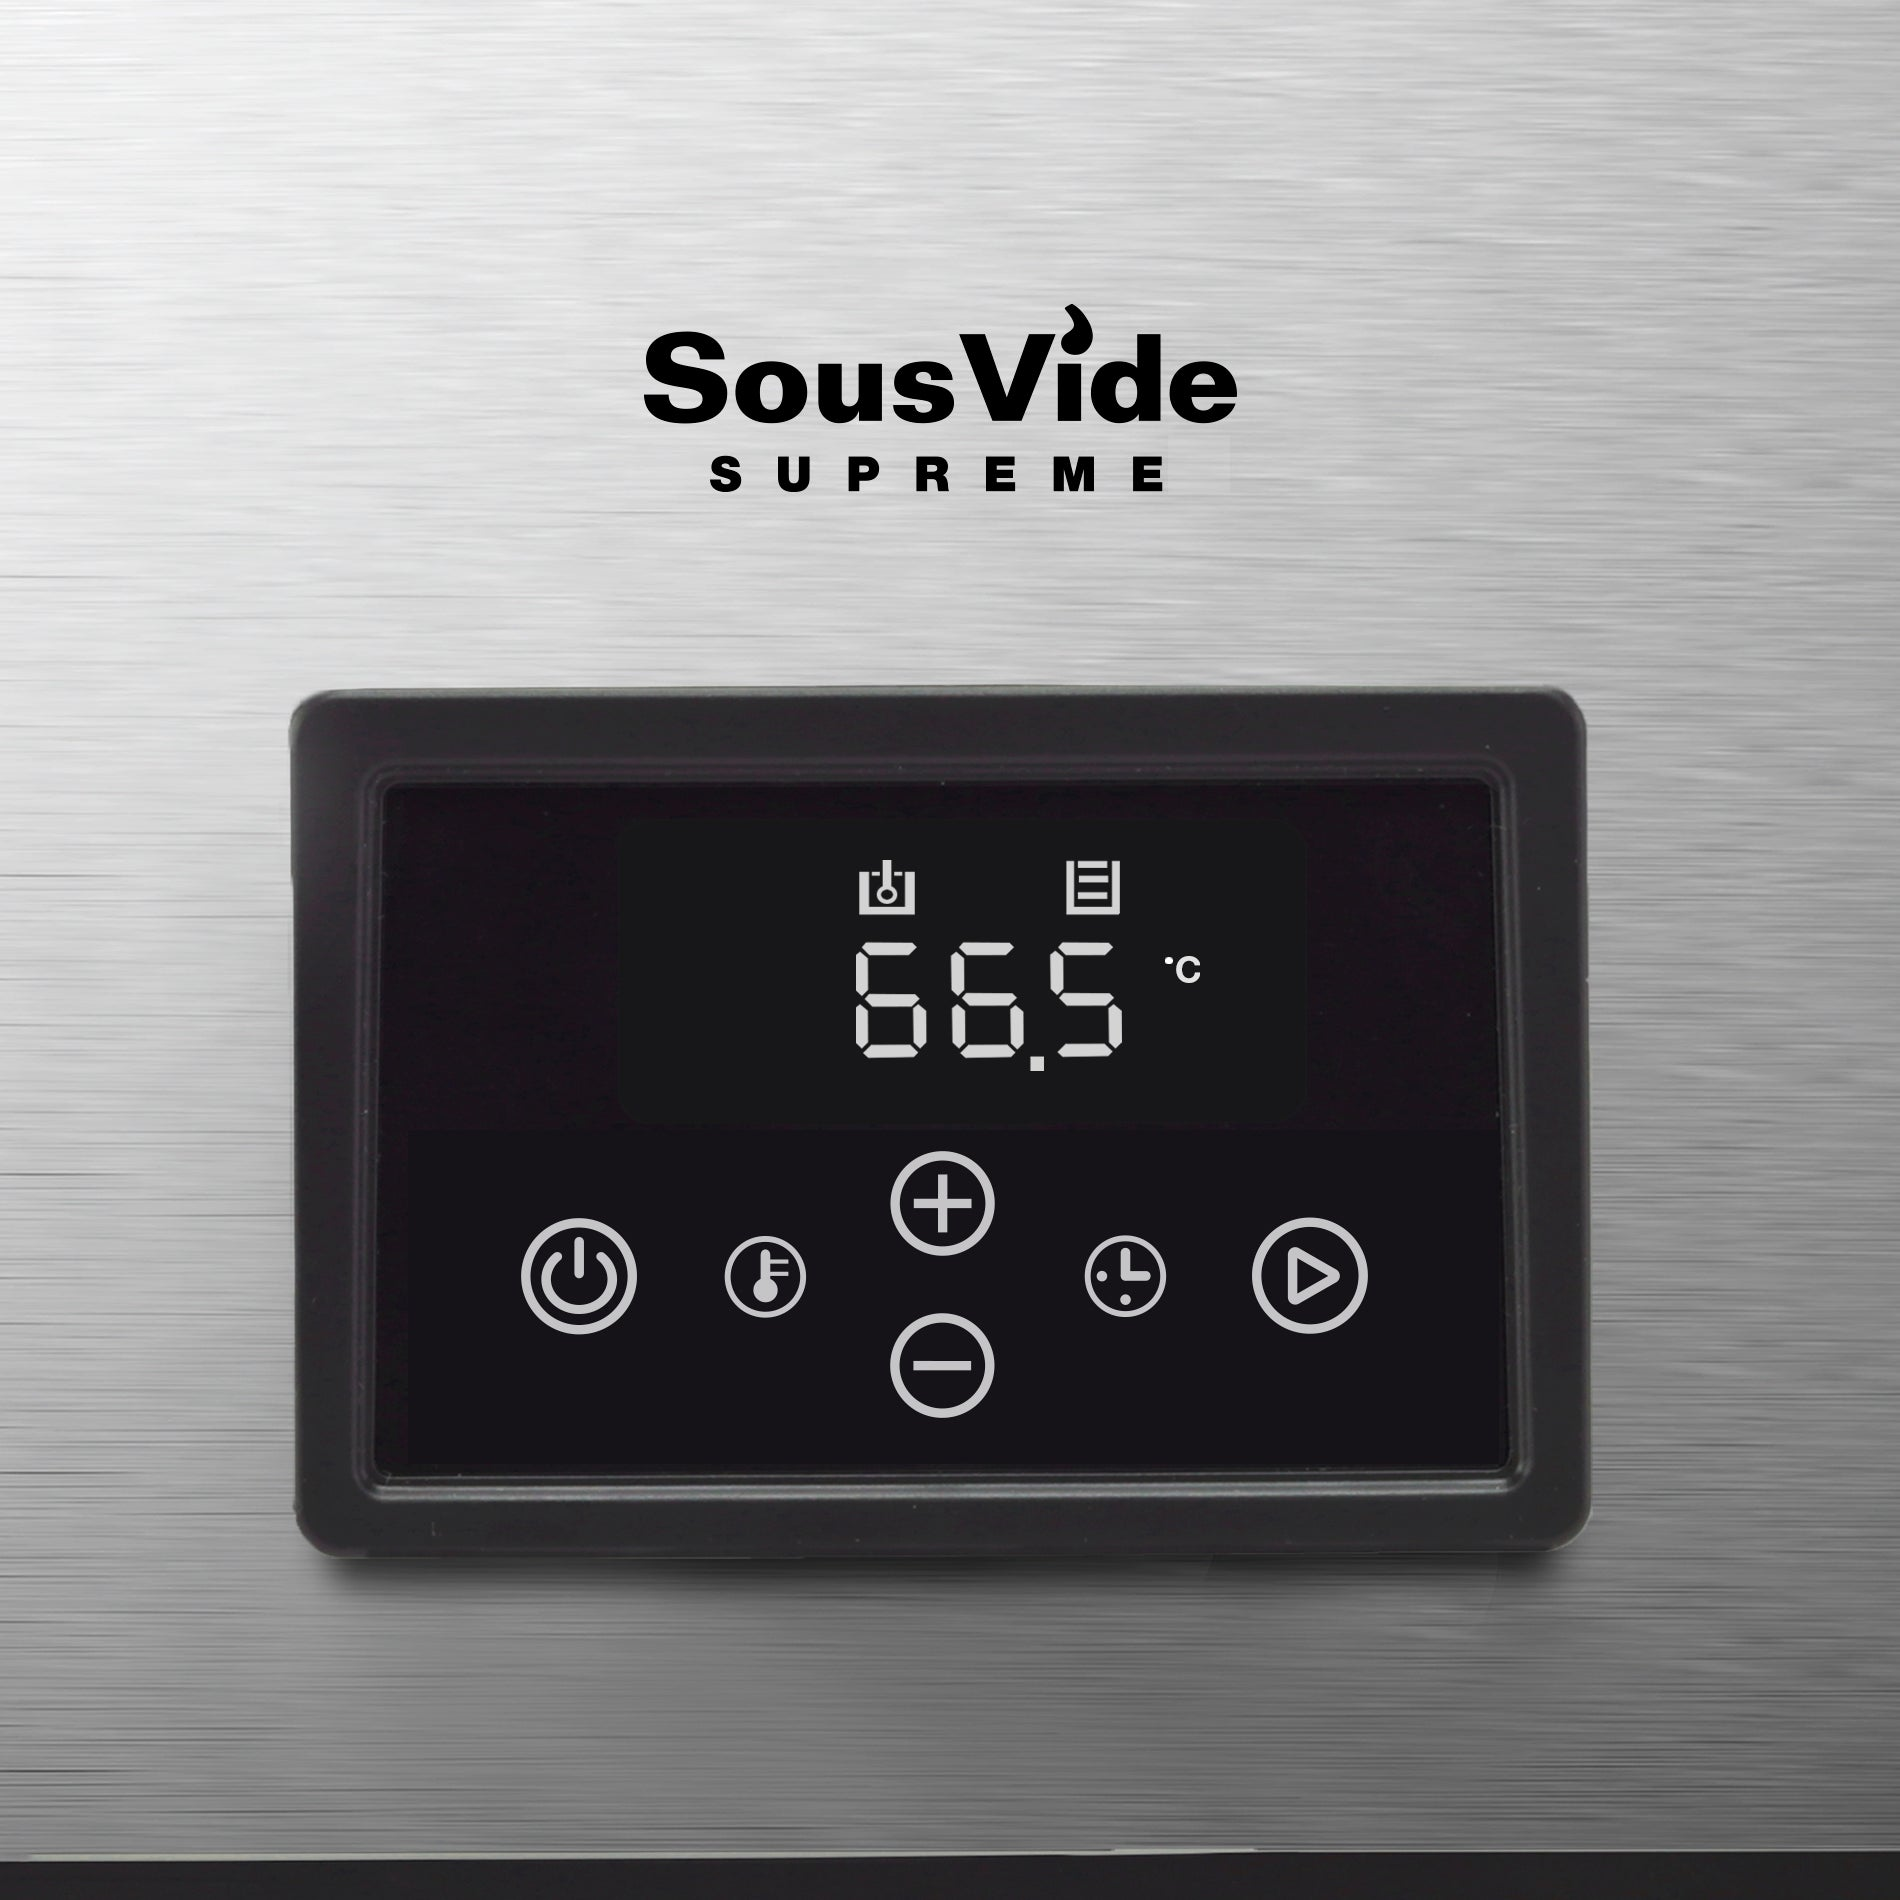 SousVide Supreme Touch 11L Stainless Steel Touch Panel